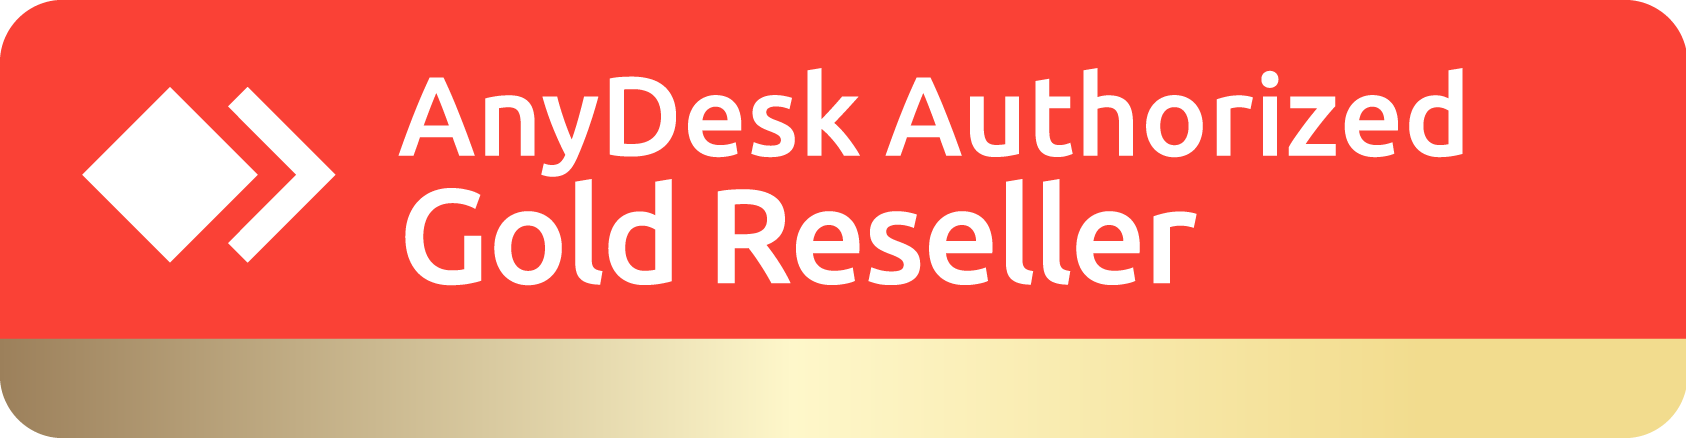 AnyDesk Authorized Gold Reseller